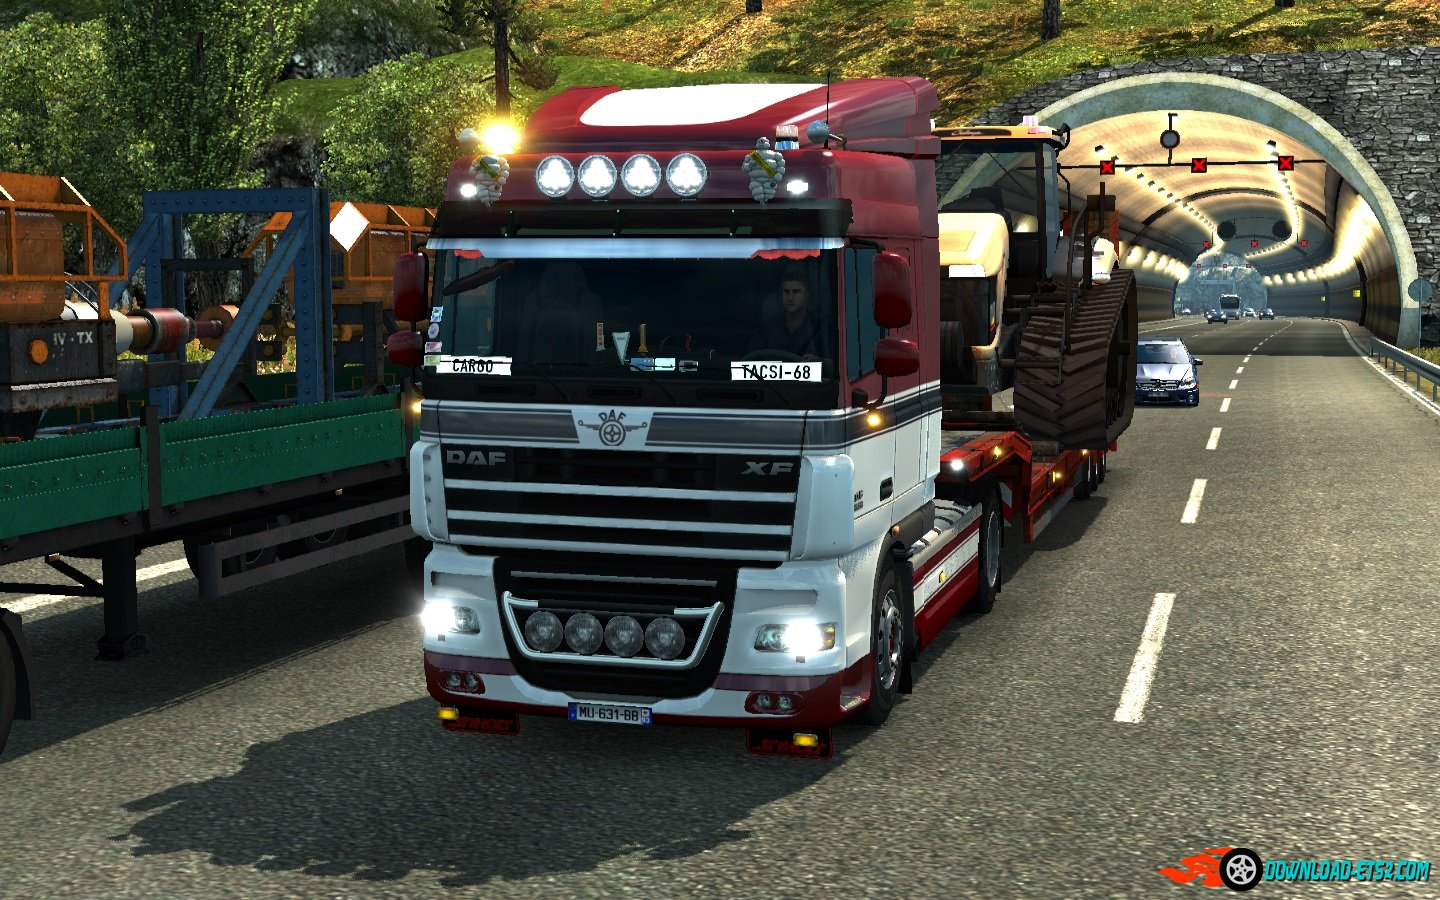 Daf xf 105 sound by Nelson